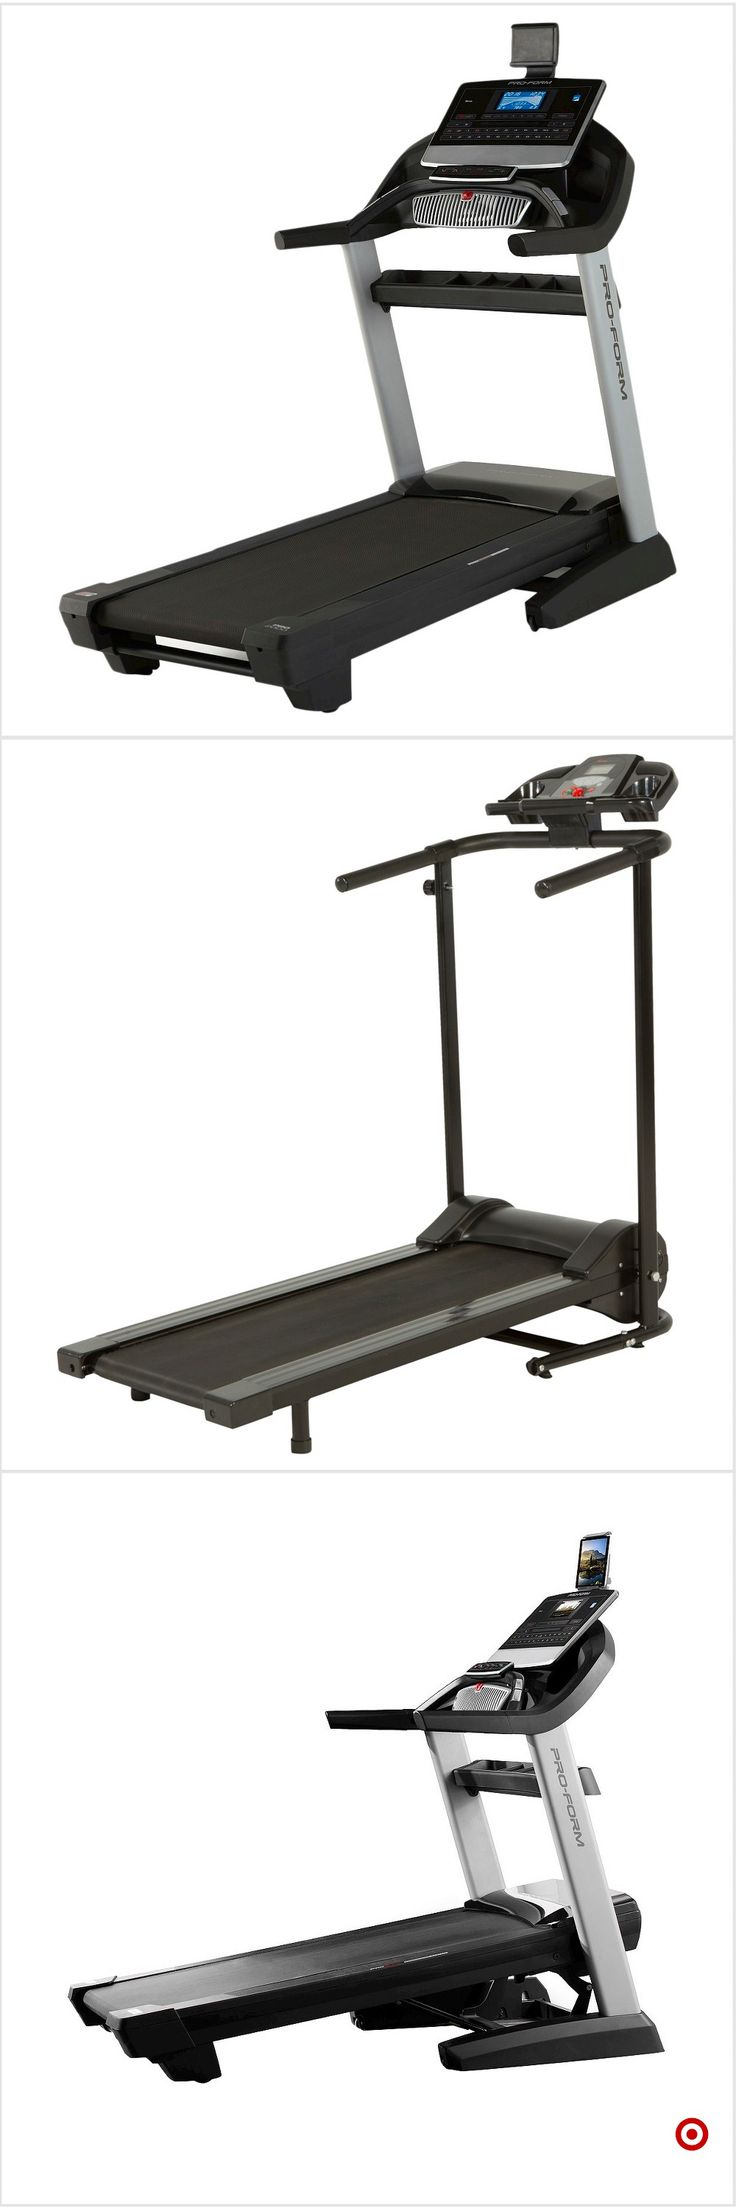 Shop Target for treadmill you will love at great low prices. Free shipping on orders of $35+ or free same-day pick-up in store.